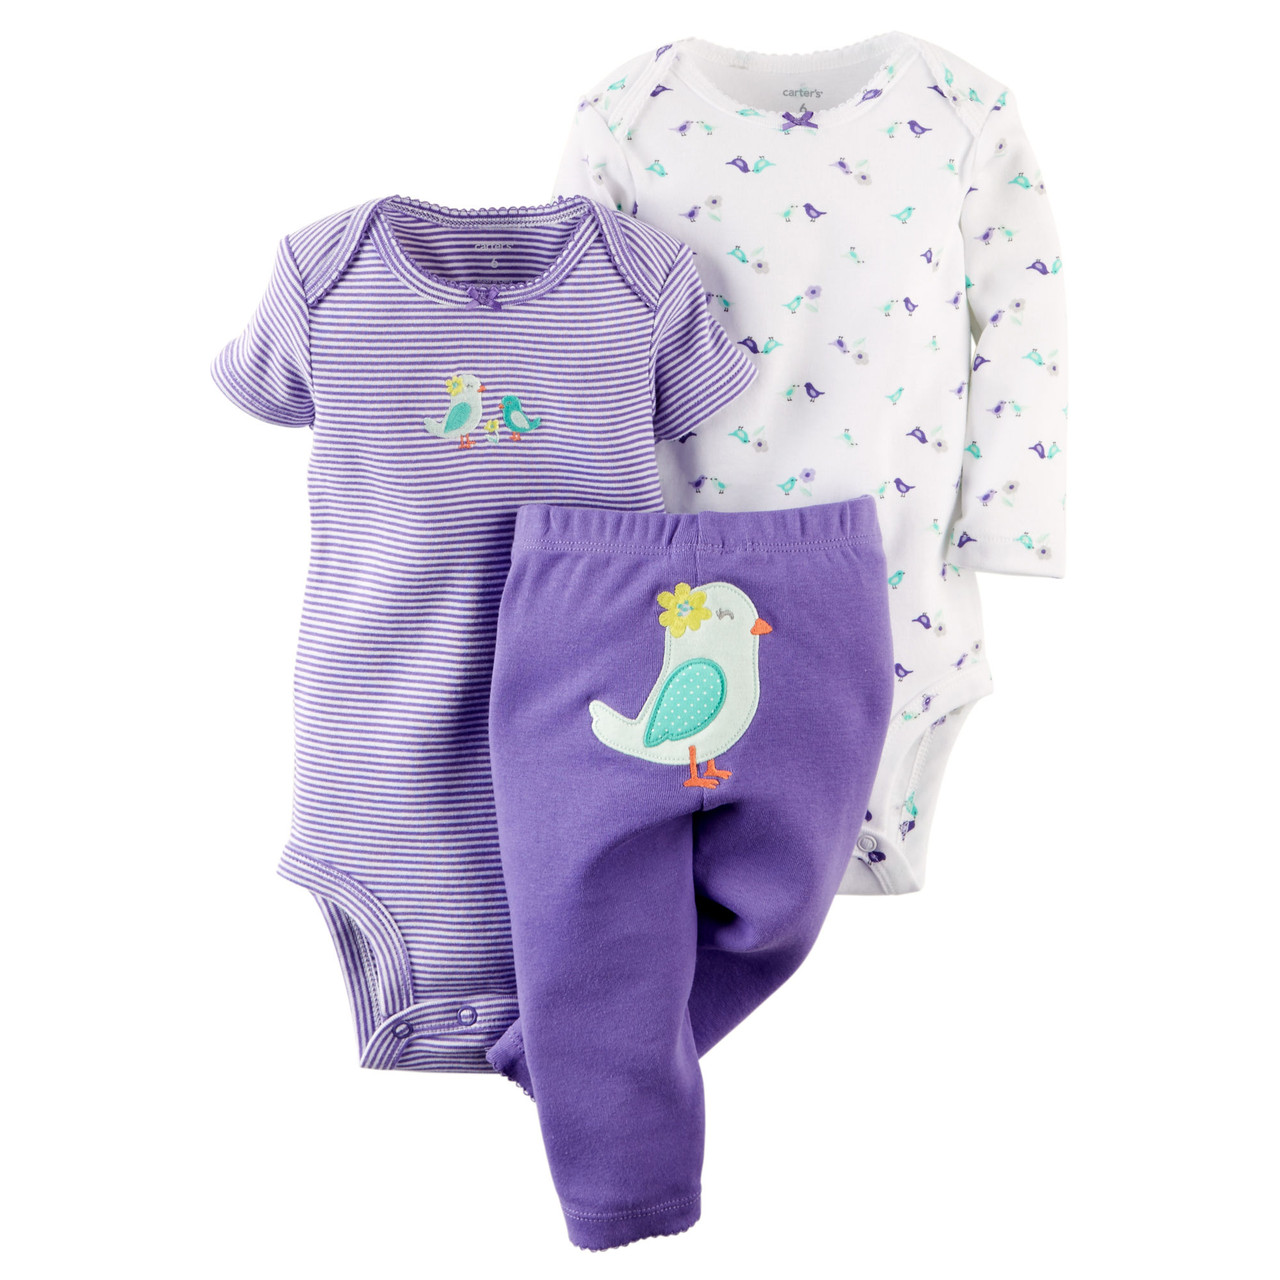 Комплект для девочки 6-9-12 мес. Bird appliqué Carter's (США)